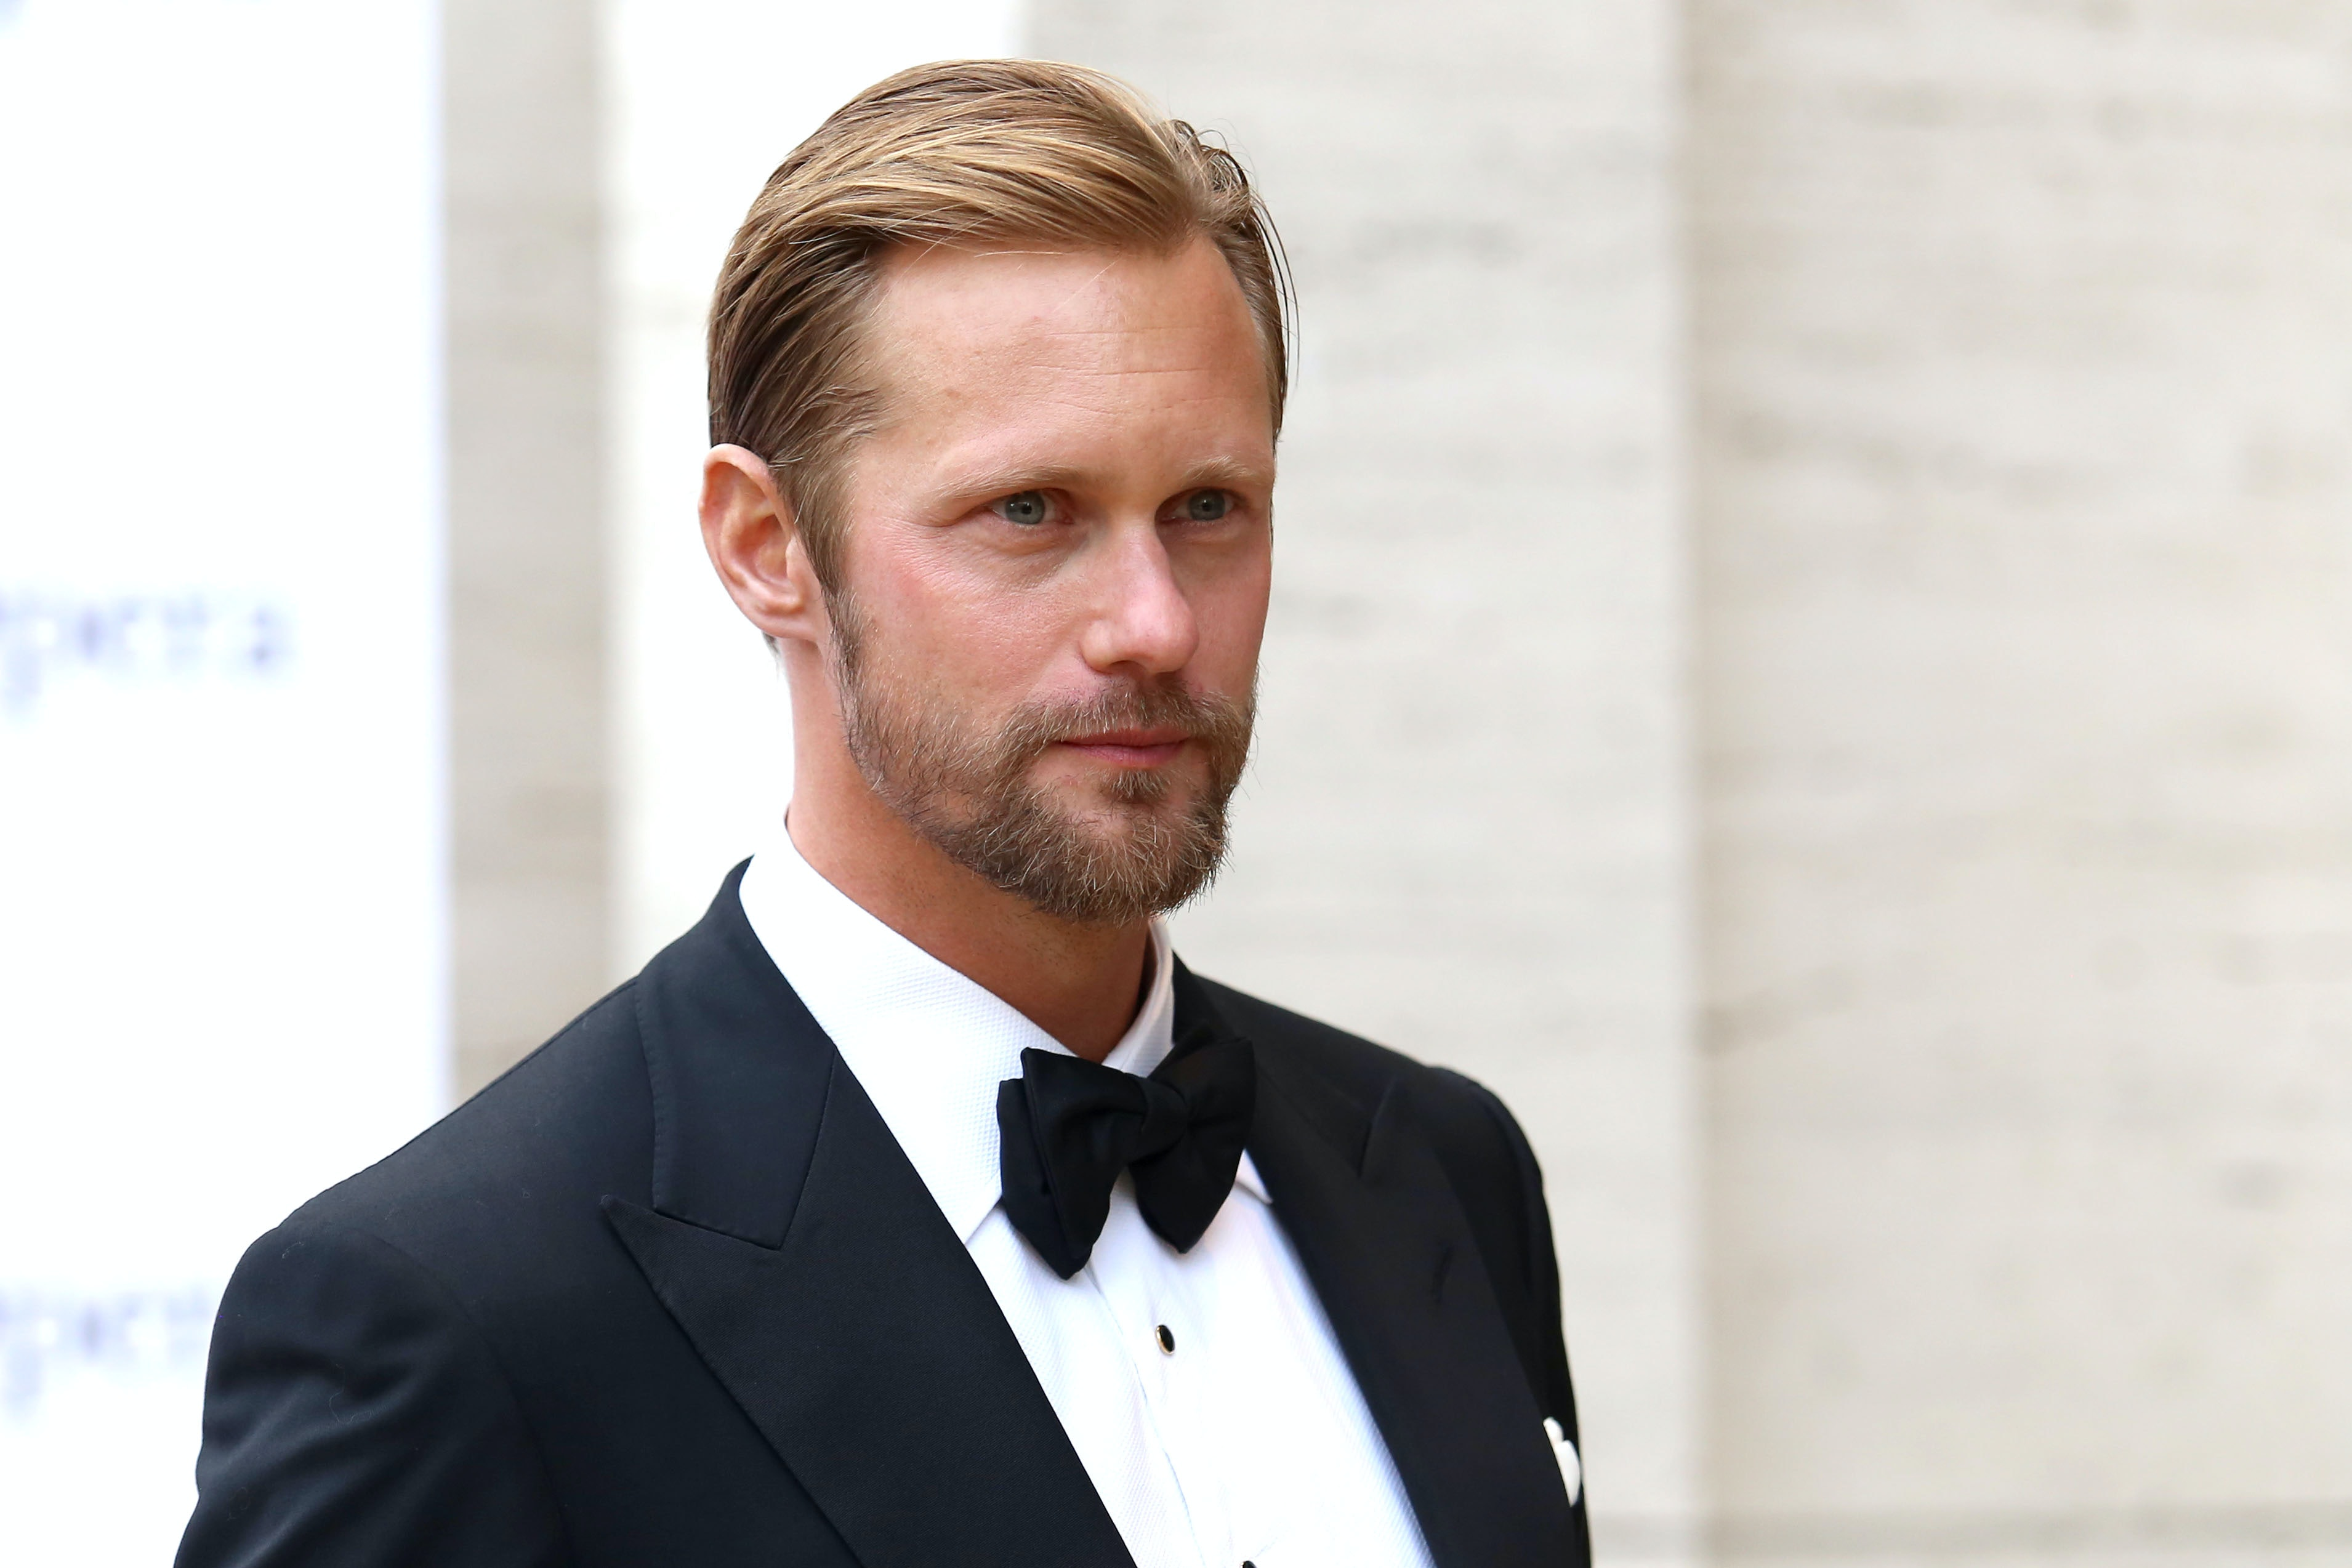 The Legend Of Tarzan 2016 Cast Alexander Skarsgard Photo Is Our First Look At New Film